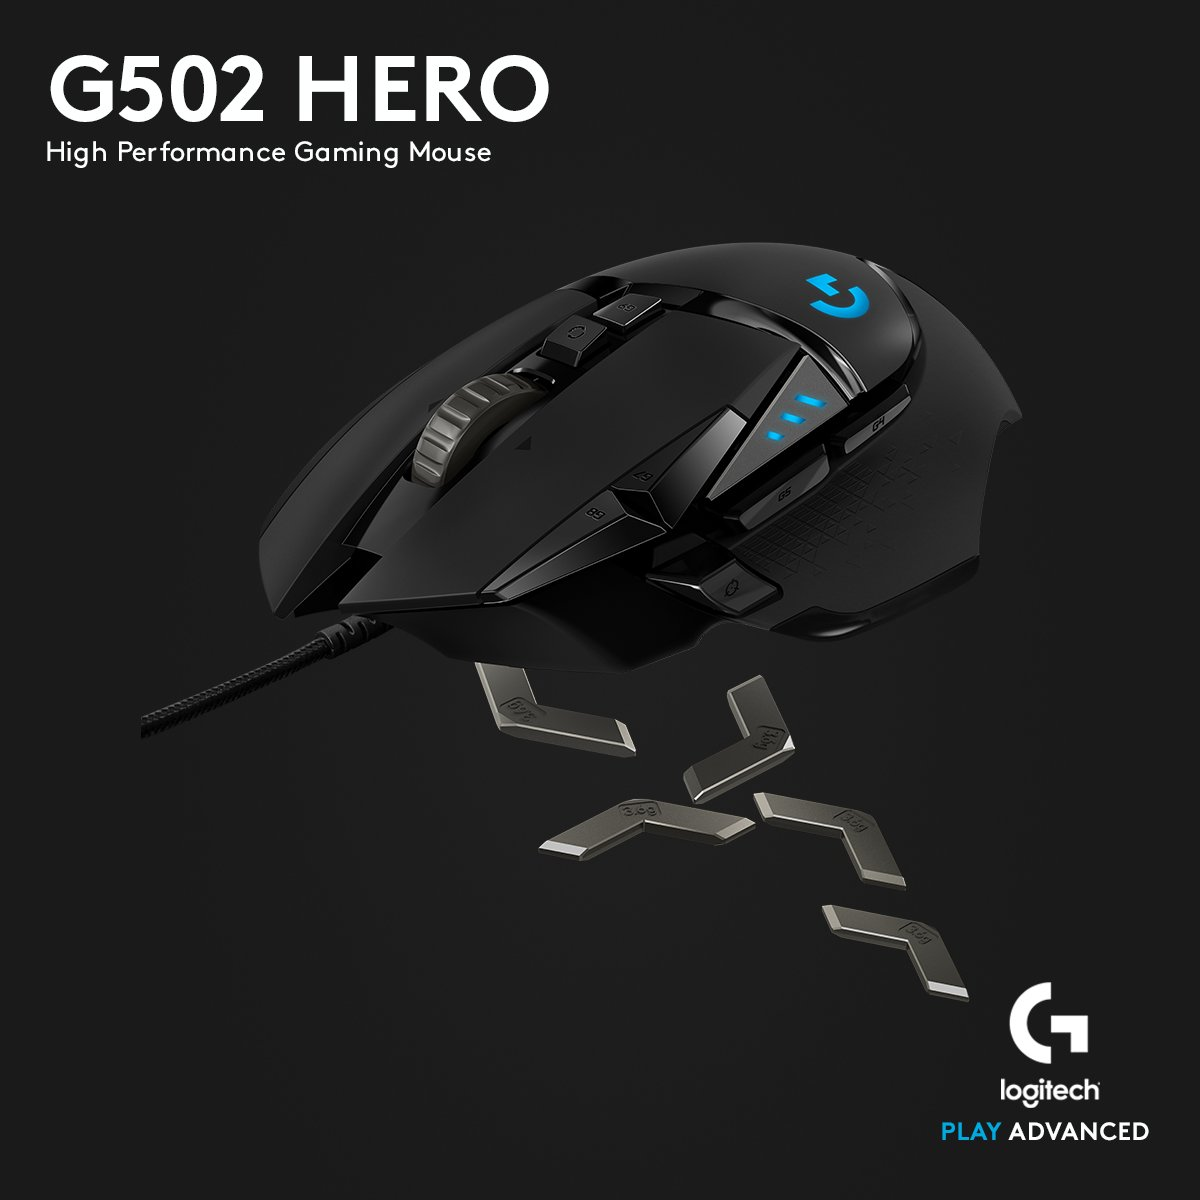 Overwolf On Twitter Time For A New Gaming Mouse Check Out The